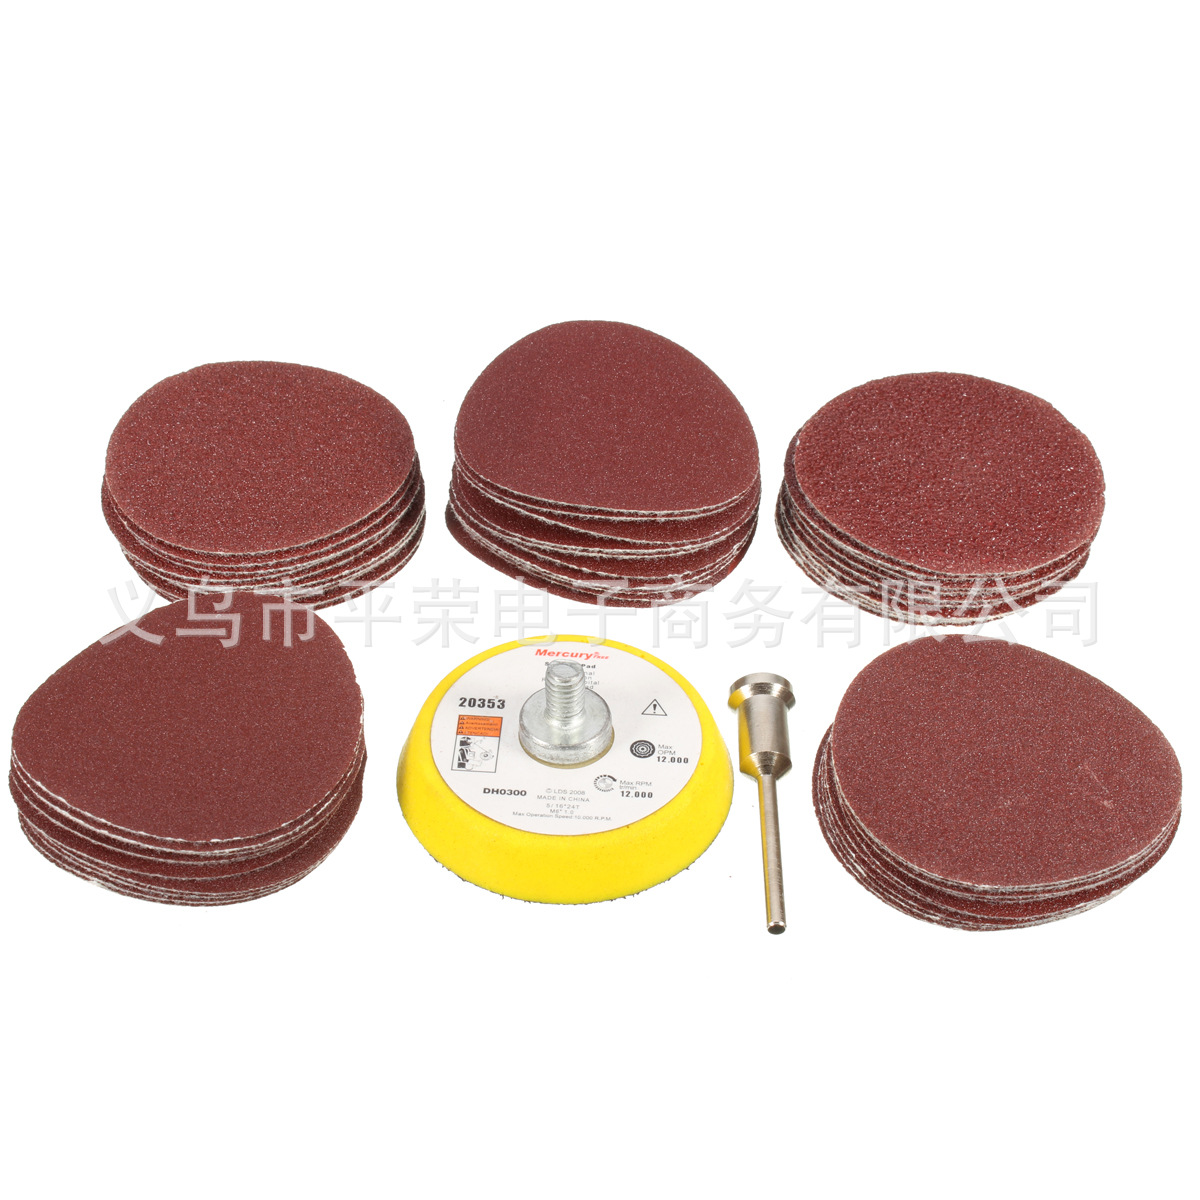 2-Inch 50 Mm Sandpaper Suit 50 Pc Disc Sandpaper Flocking Sandpaper Pieces Polishing Sandpaper